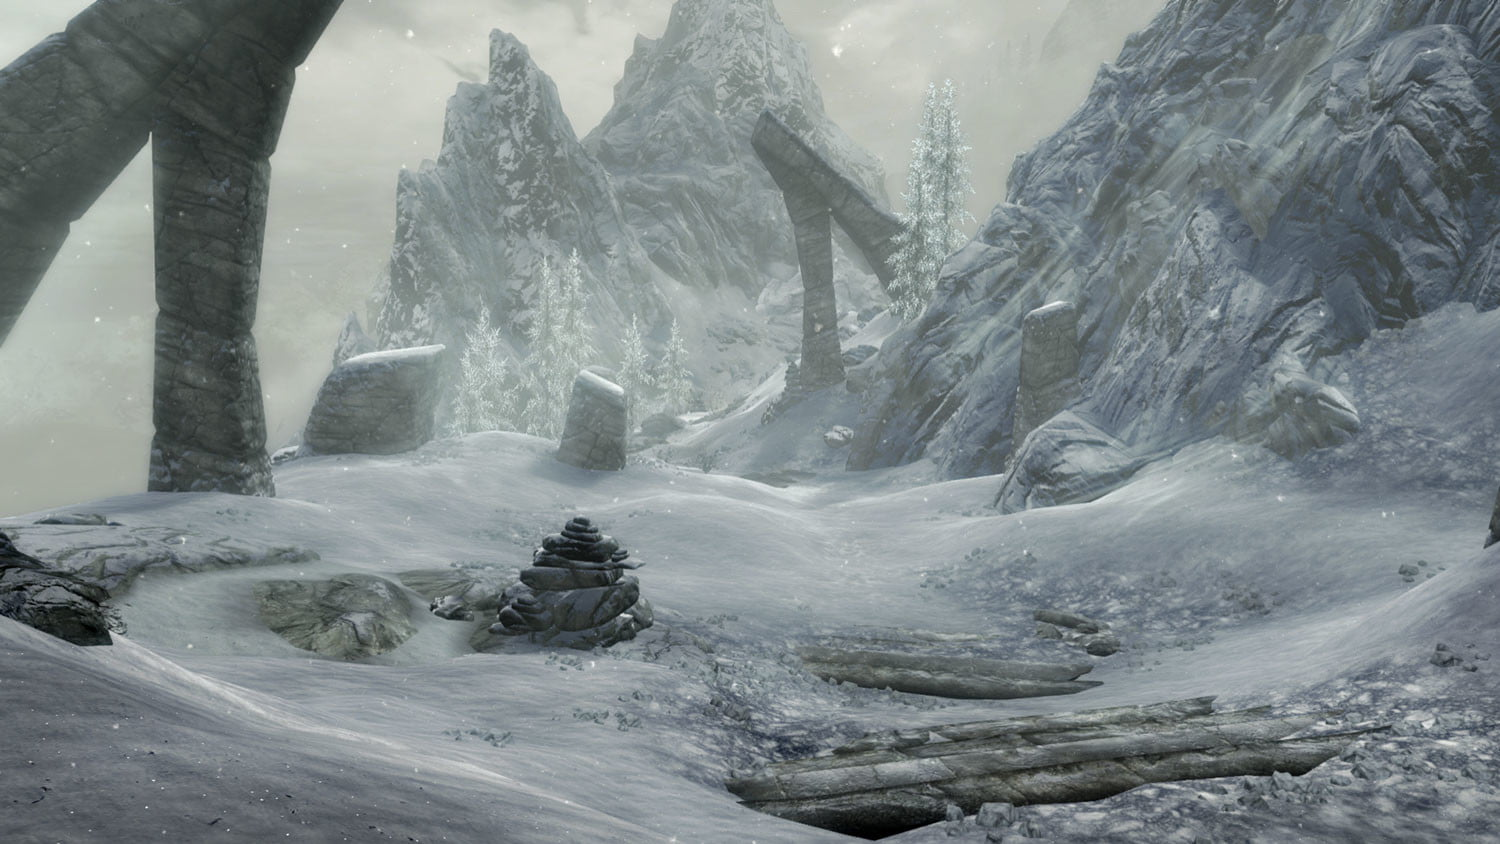 The Elder Scrolls V: Skyrim' Tips and Tricks | Digital Trends